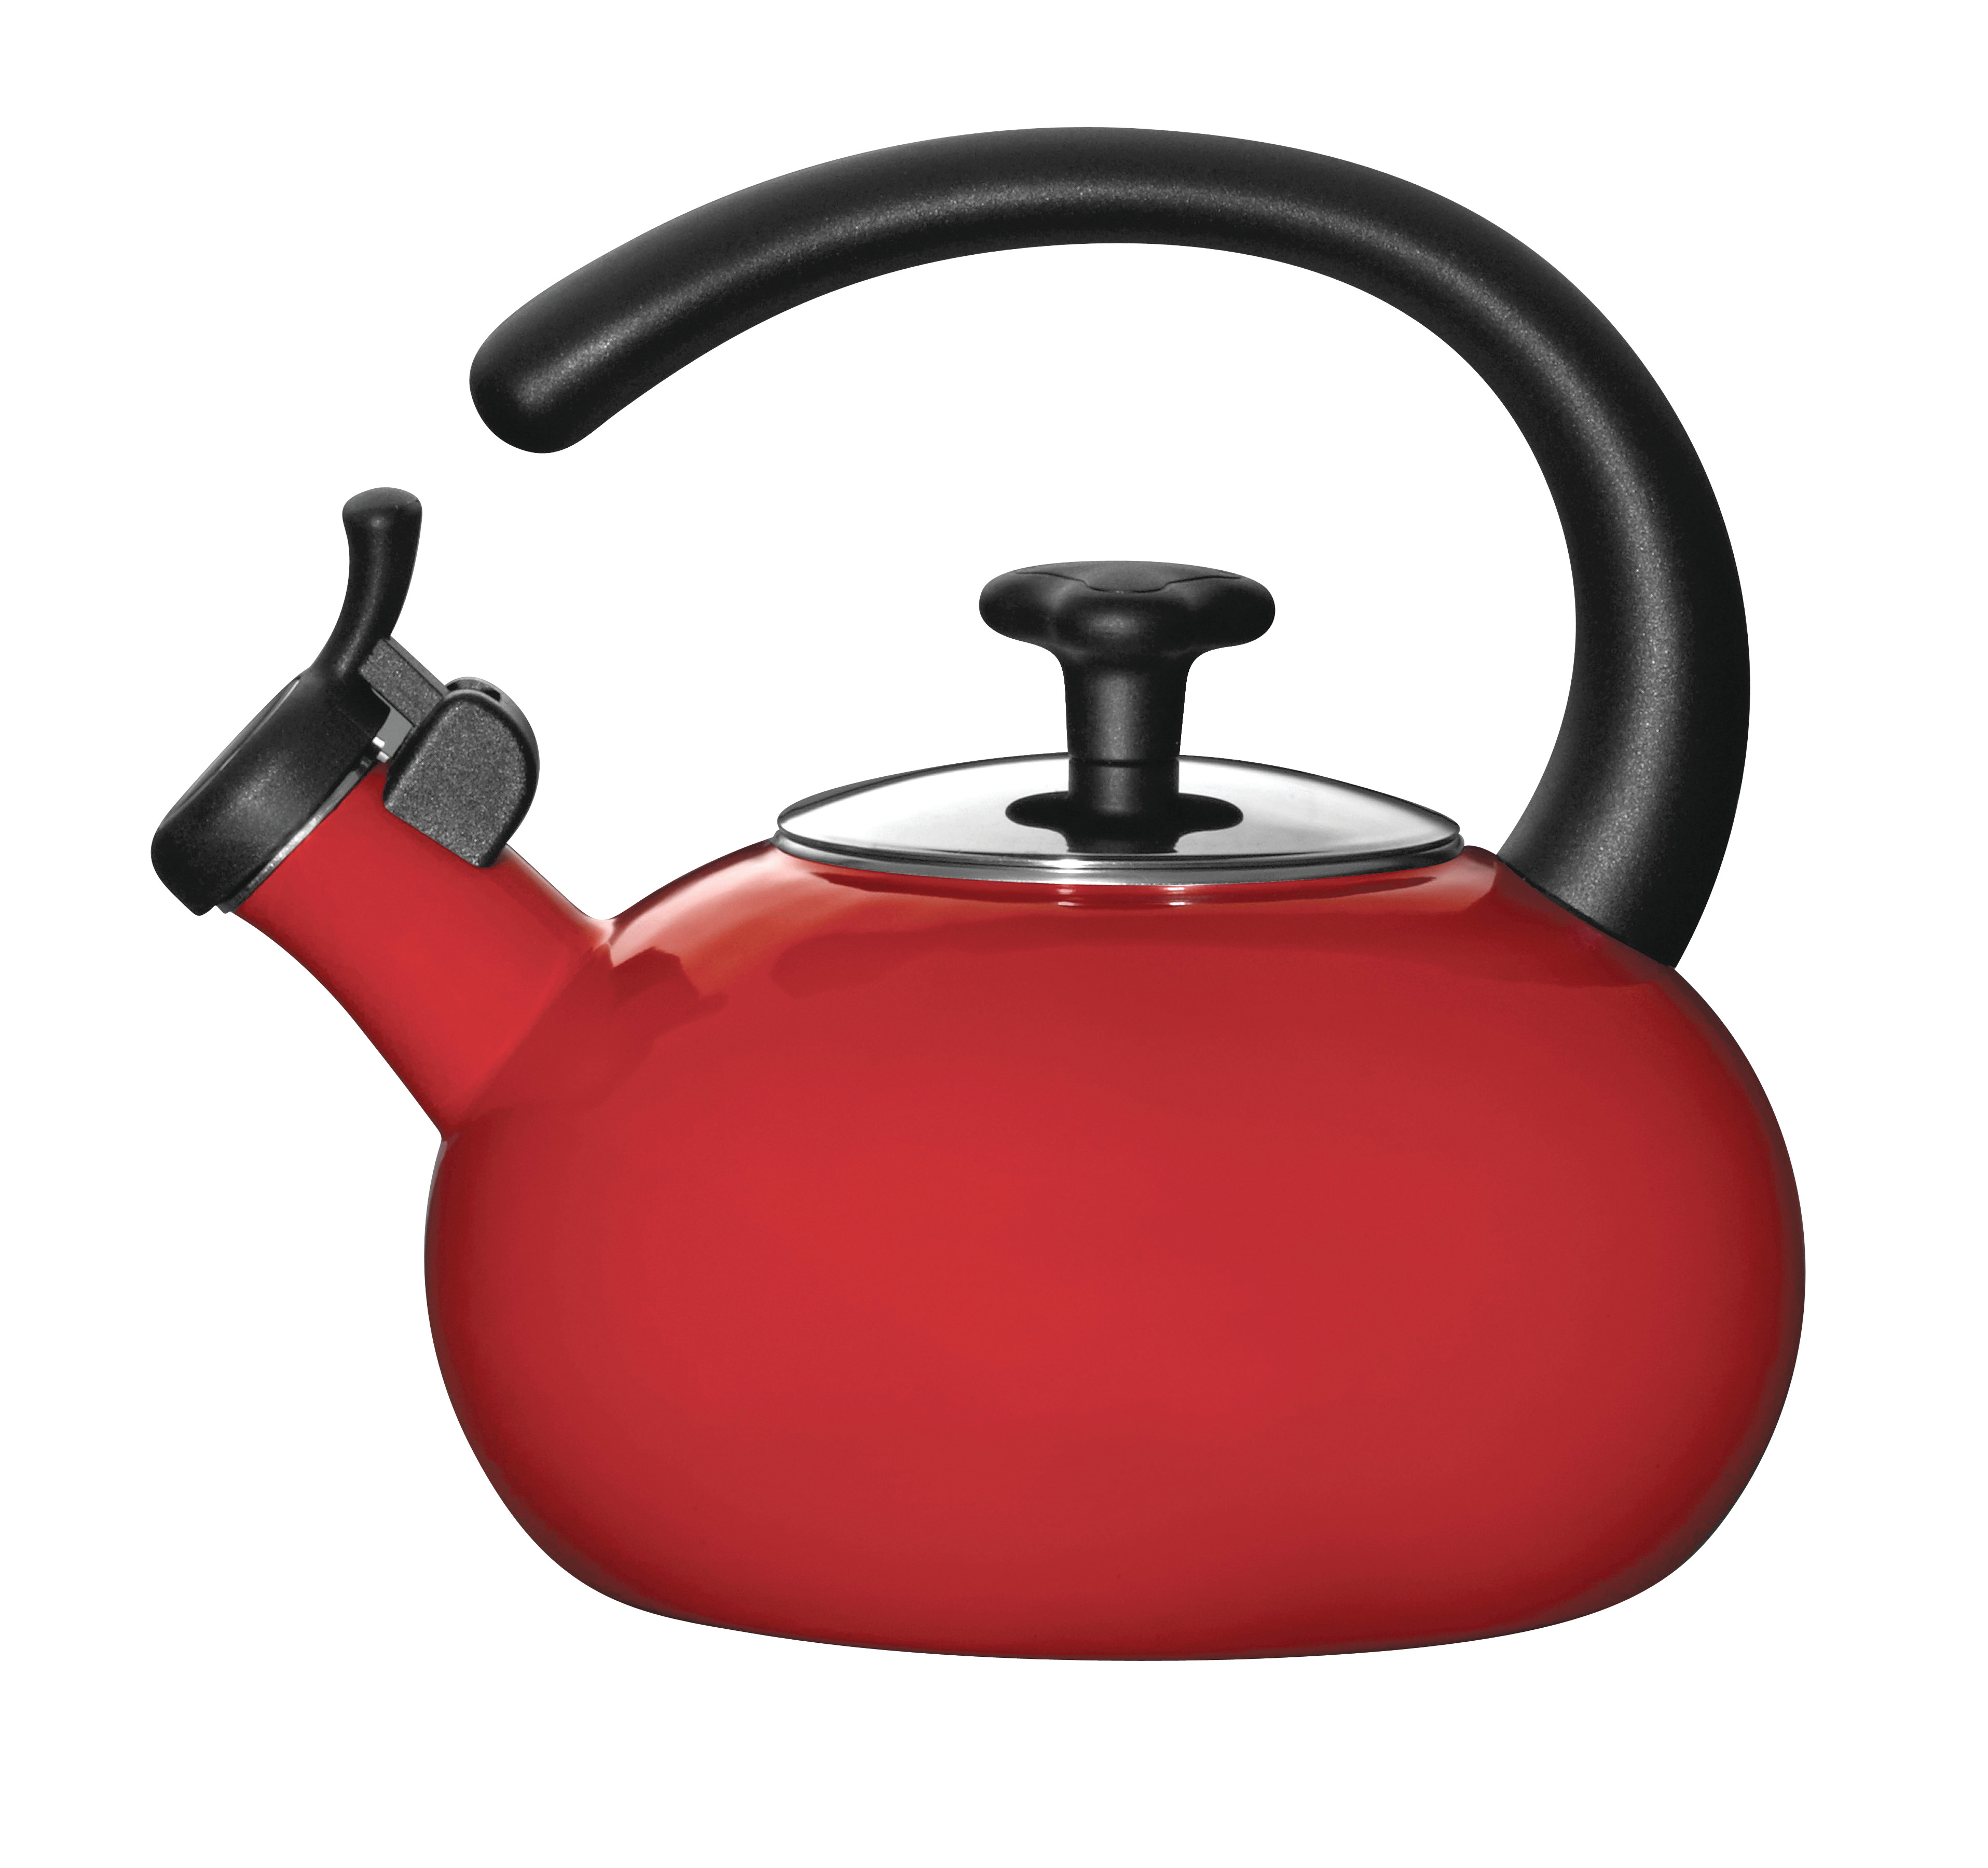 Rachael Ray Teakettles 1-1/2 Quart Teakettle, Red